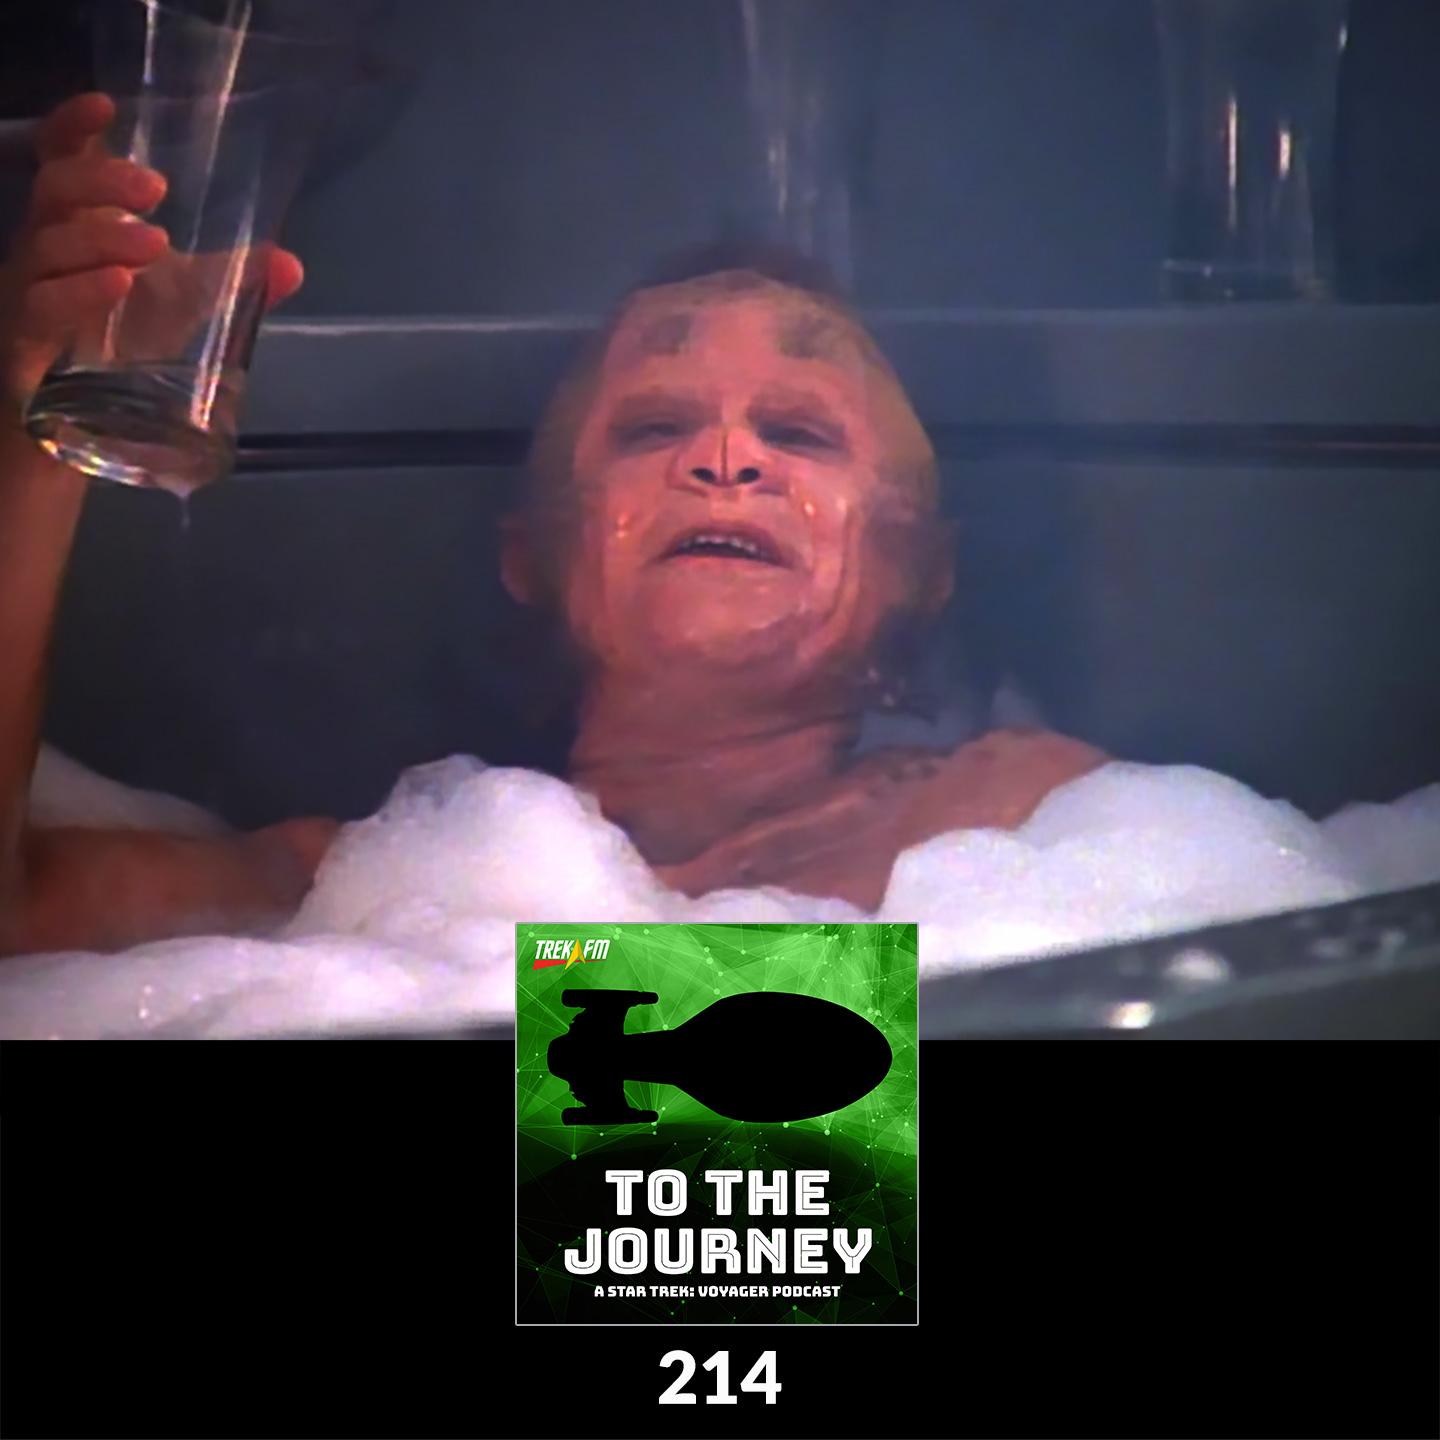 To The Journey 214: The Delaney Rule - Desert Island Episodes - Voyager Season 1.